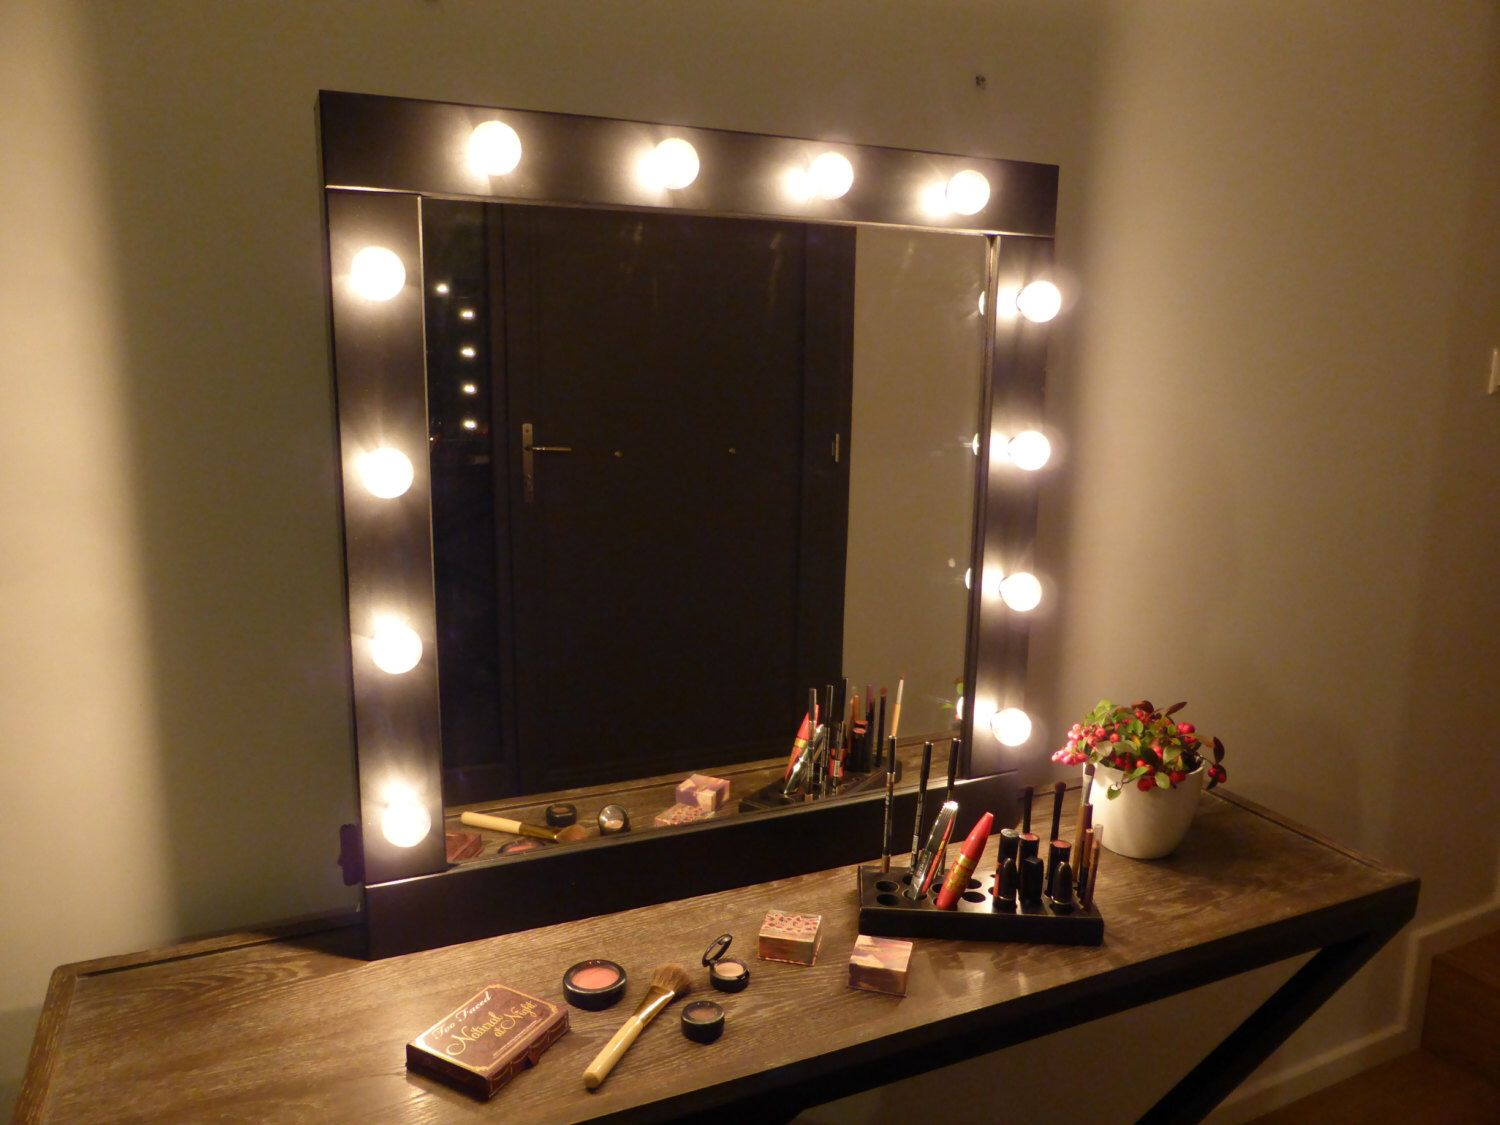 Vanity mirror with lights - makeup mirror wall hanging or stand alone -  Hollywood style mirror